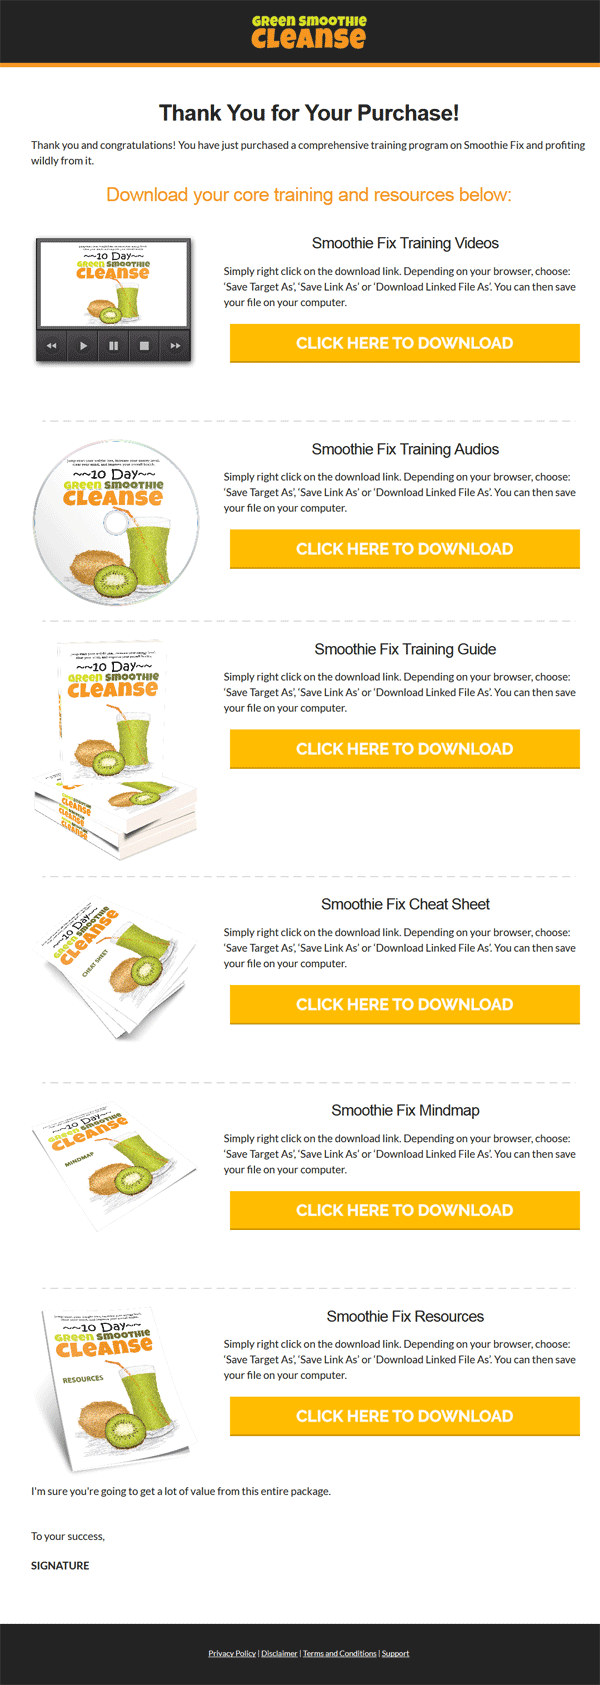 Green smoothie cleanse ebook and videos mrr green fandeluxe Gallery